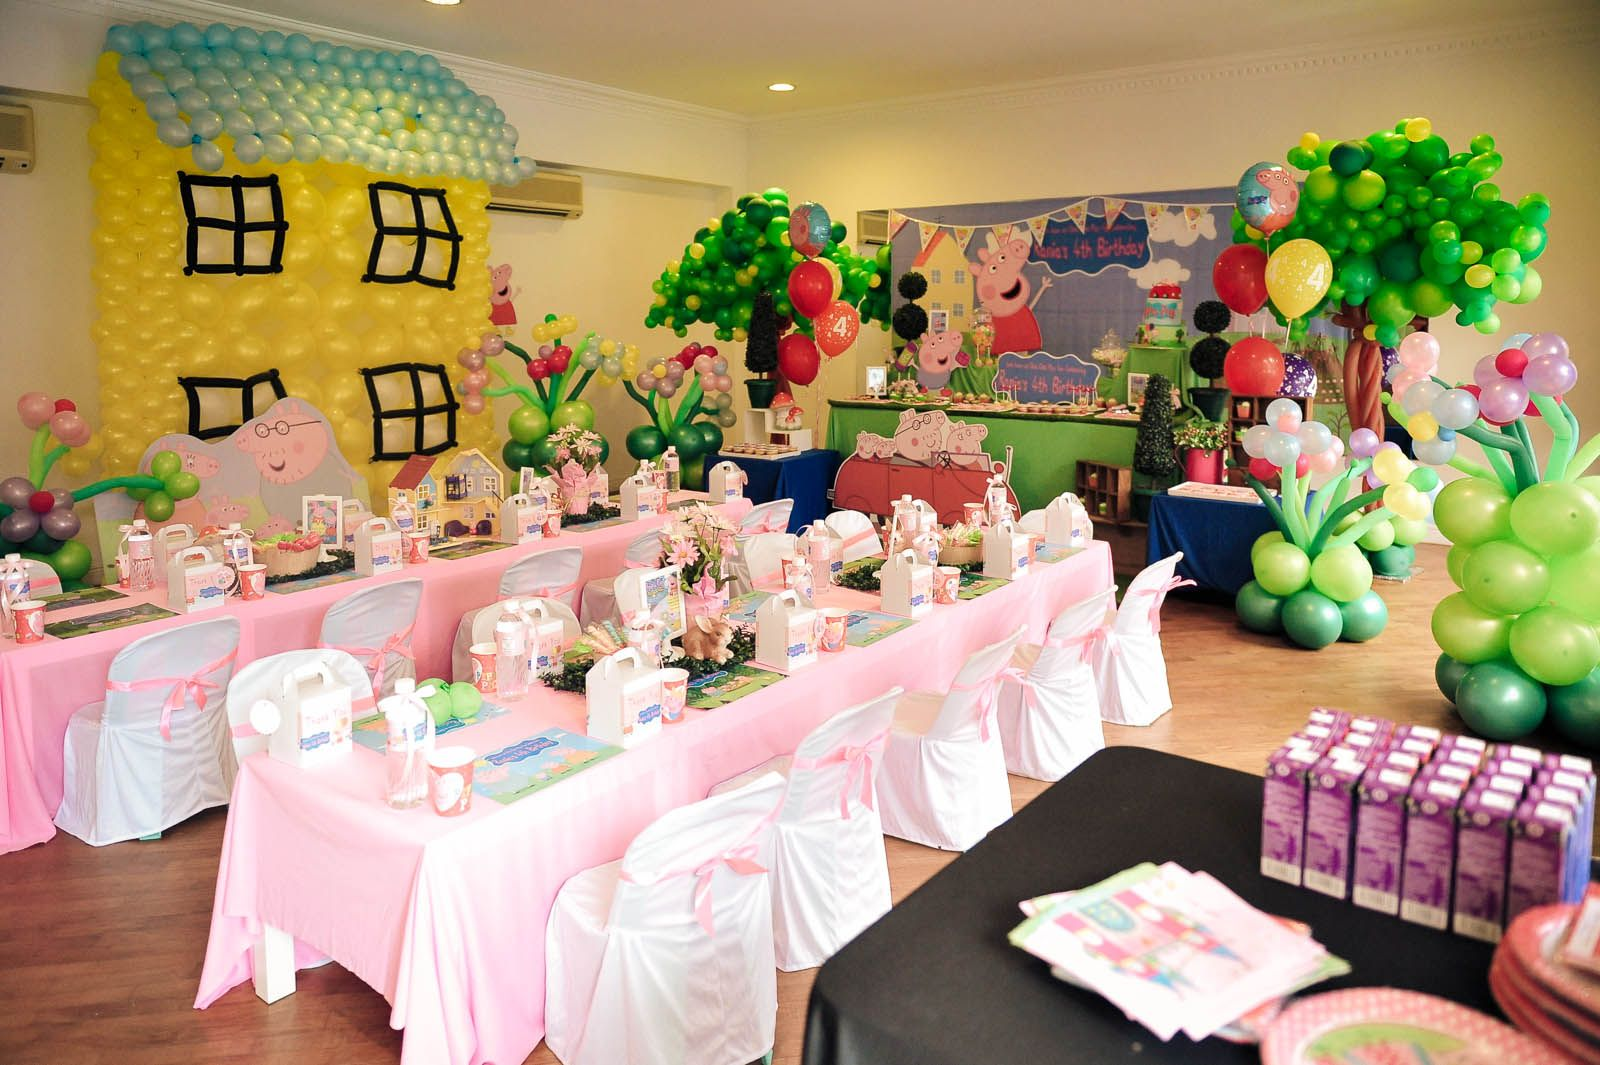 decor party ideas decorations peppa of pig design